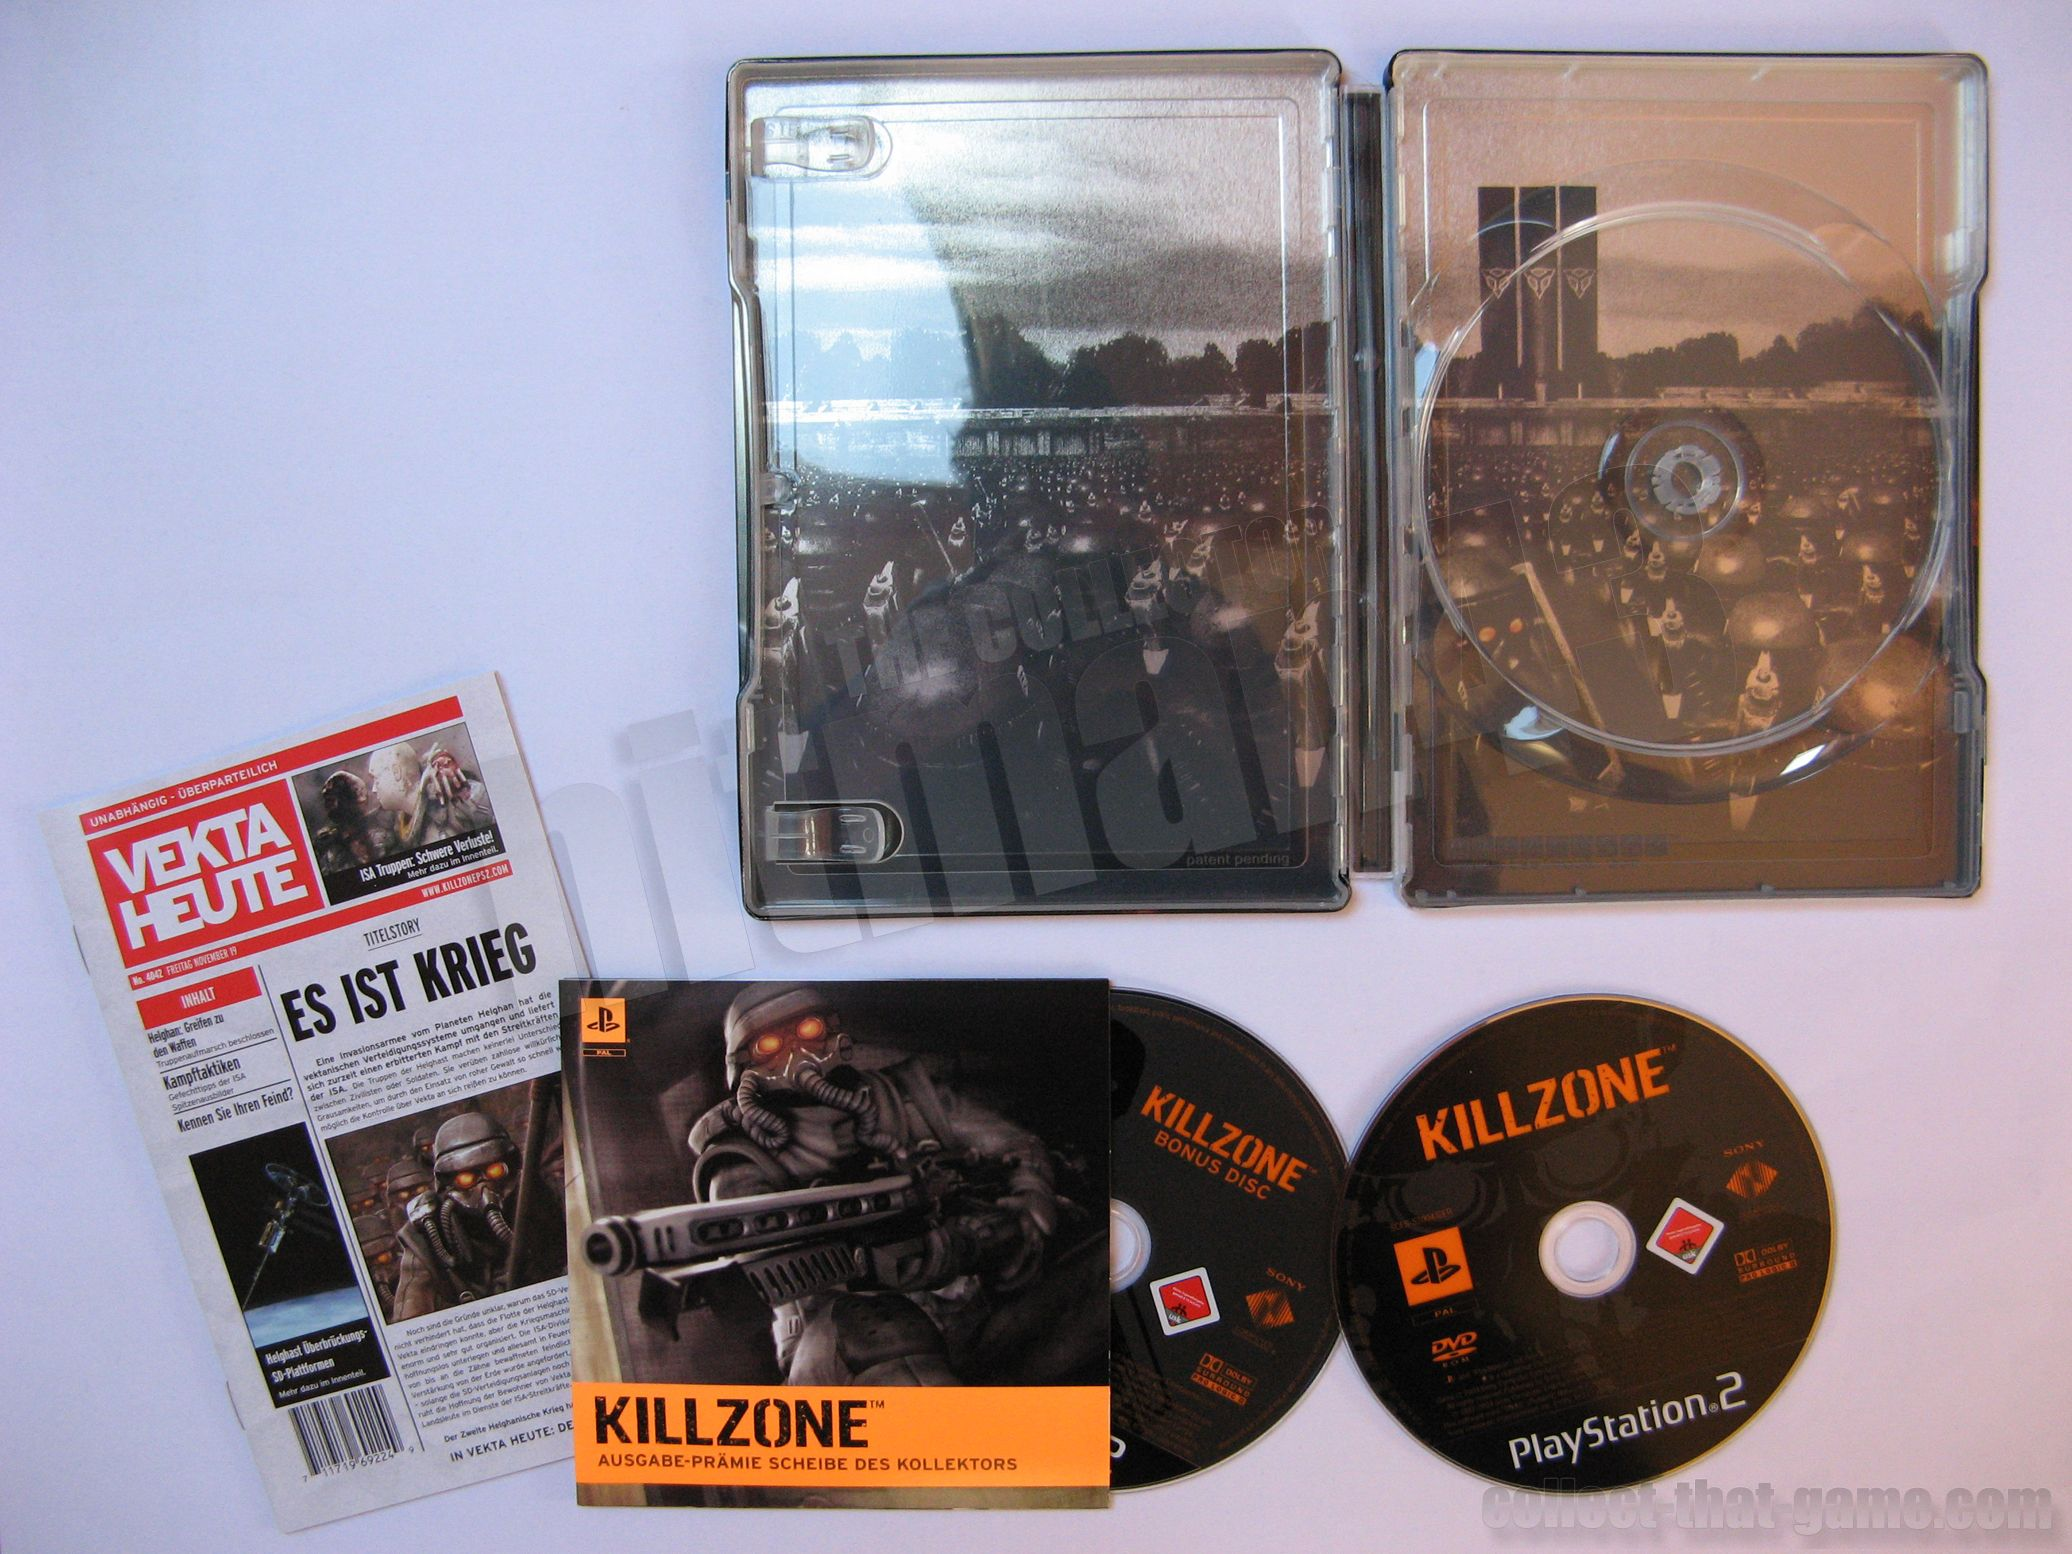 http://www.collect-that-game.com/wp-content/gallery/killzone-collectors-edition-steelbookps2/ps2_killzone_collectors_edition_steelbook_content1.jpg